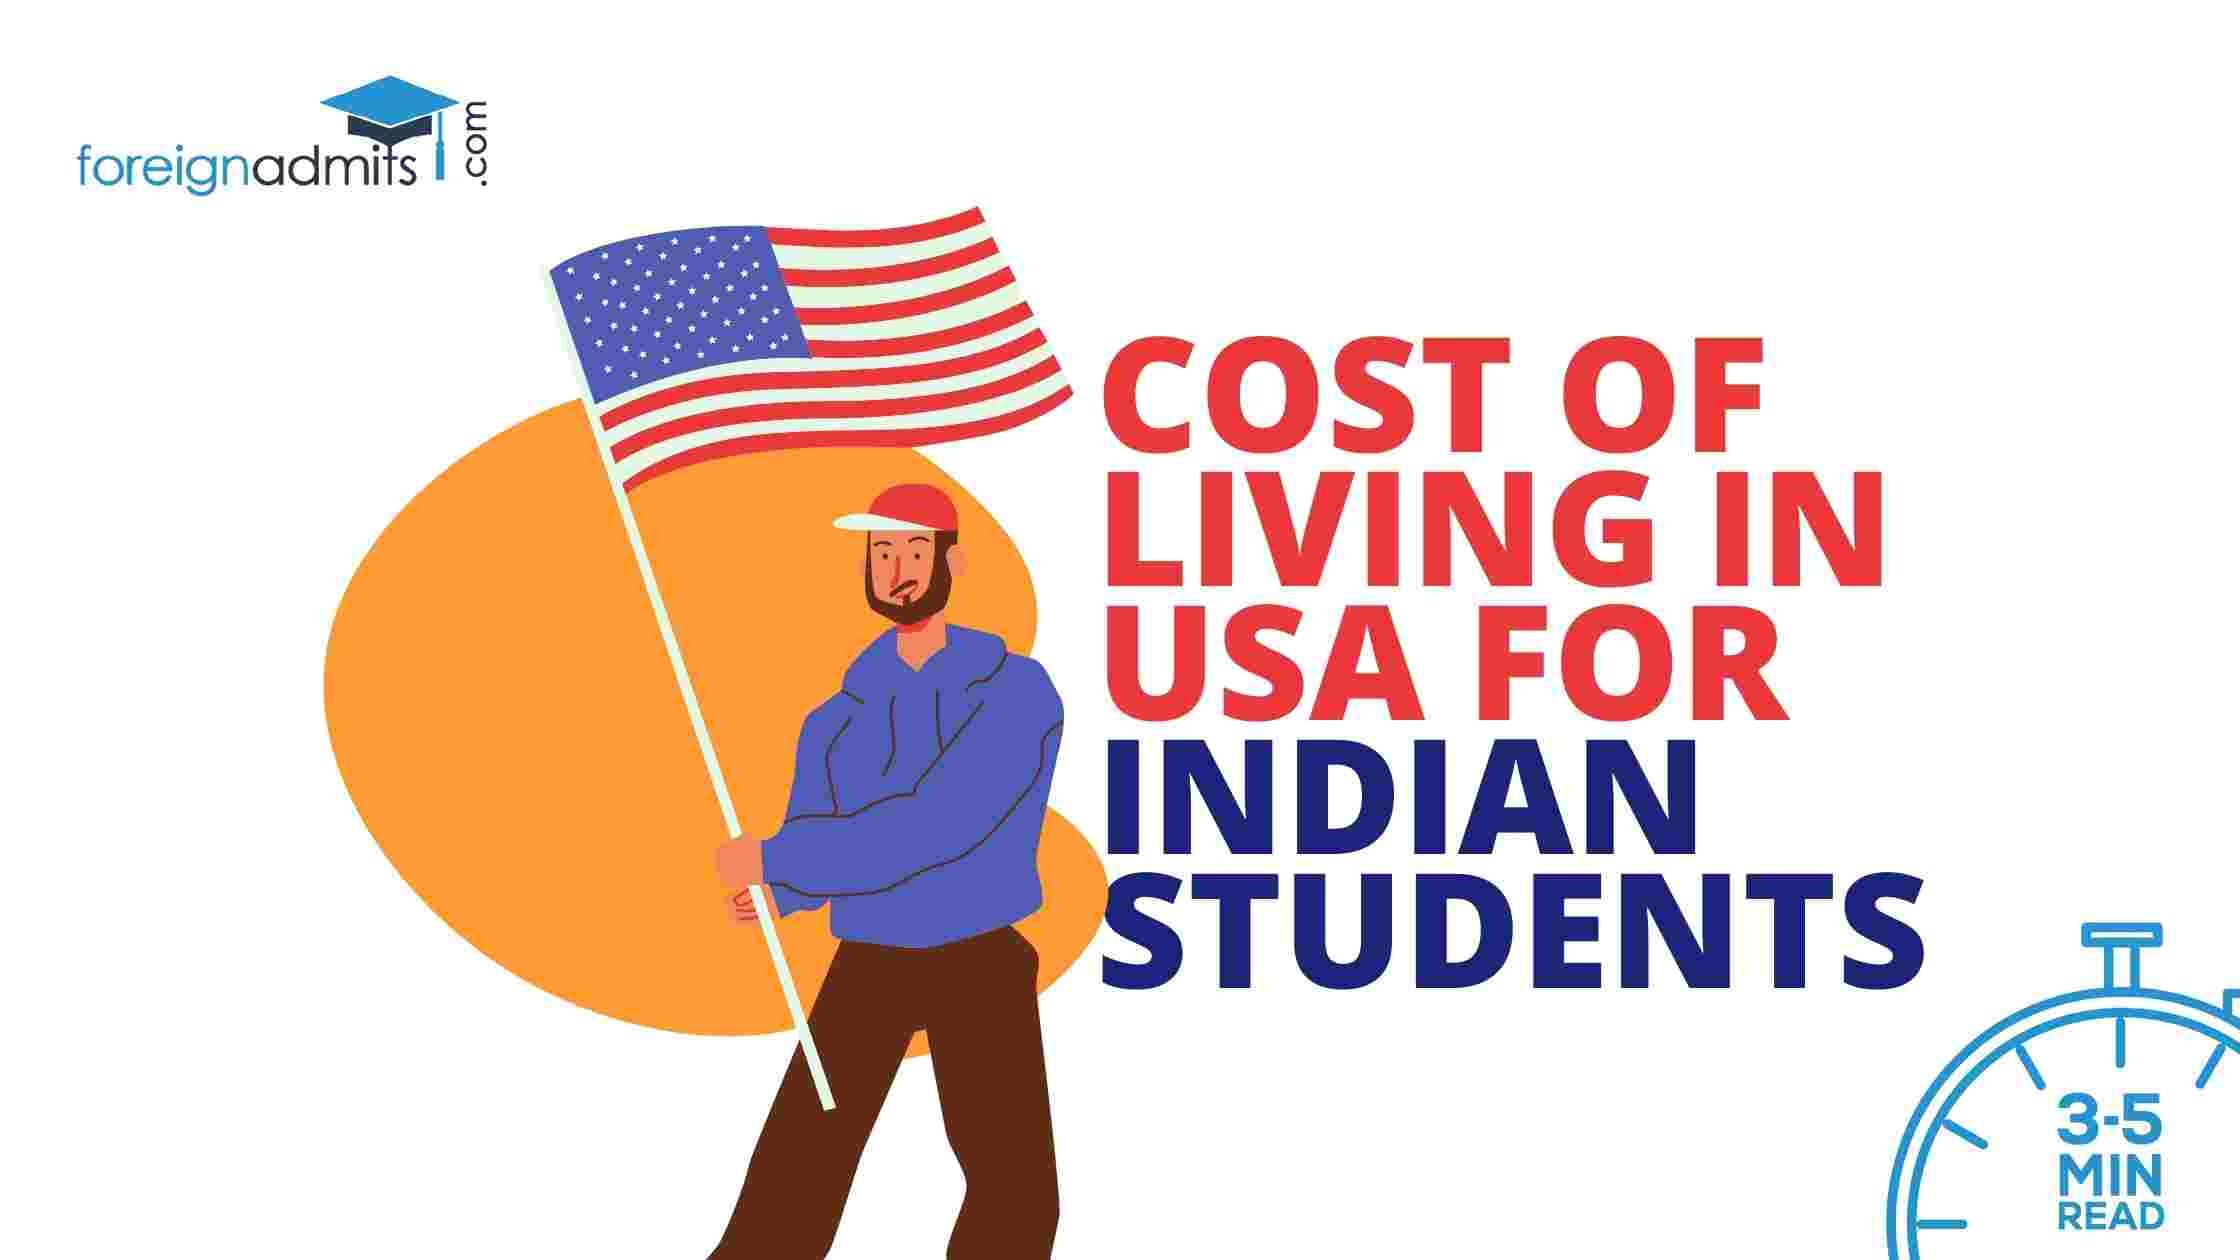 Cost Of Living In USA For Indian Students